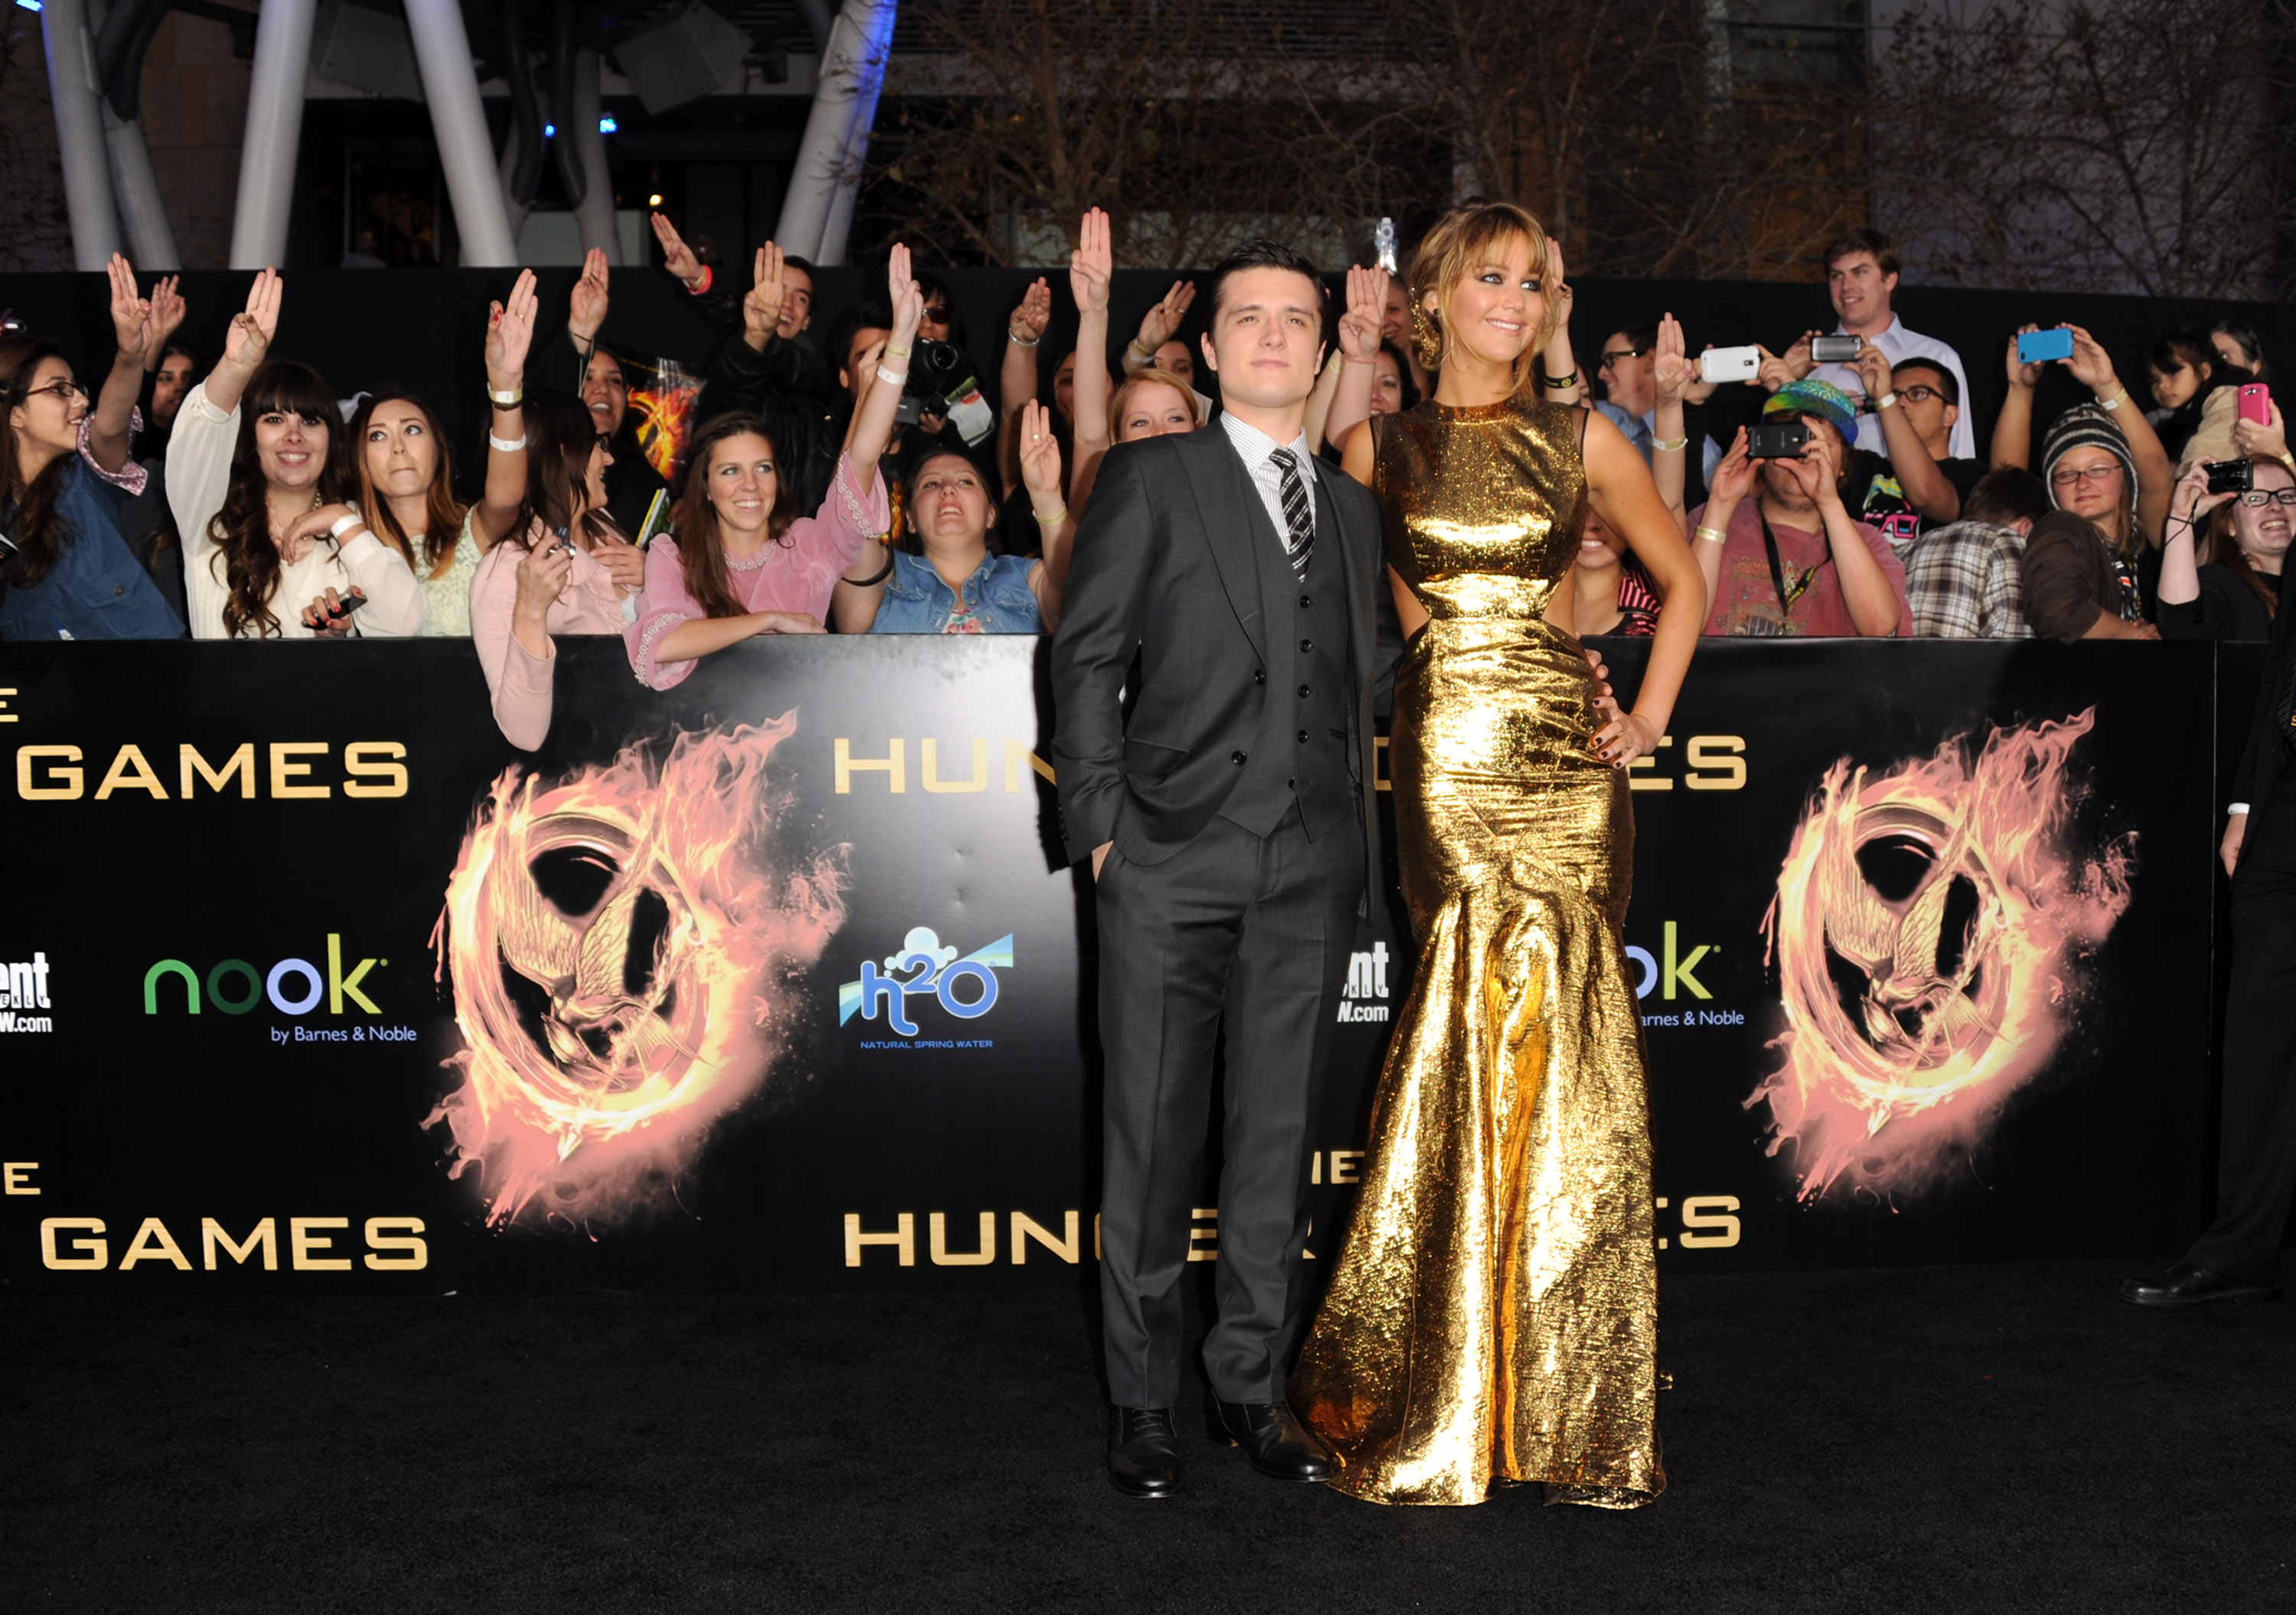 Josh Hutcherson and Jennifer Lawrence arrive at the premiere of <i>The Hunger Games</i> on March 12, 2012 in Los Angeles.